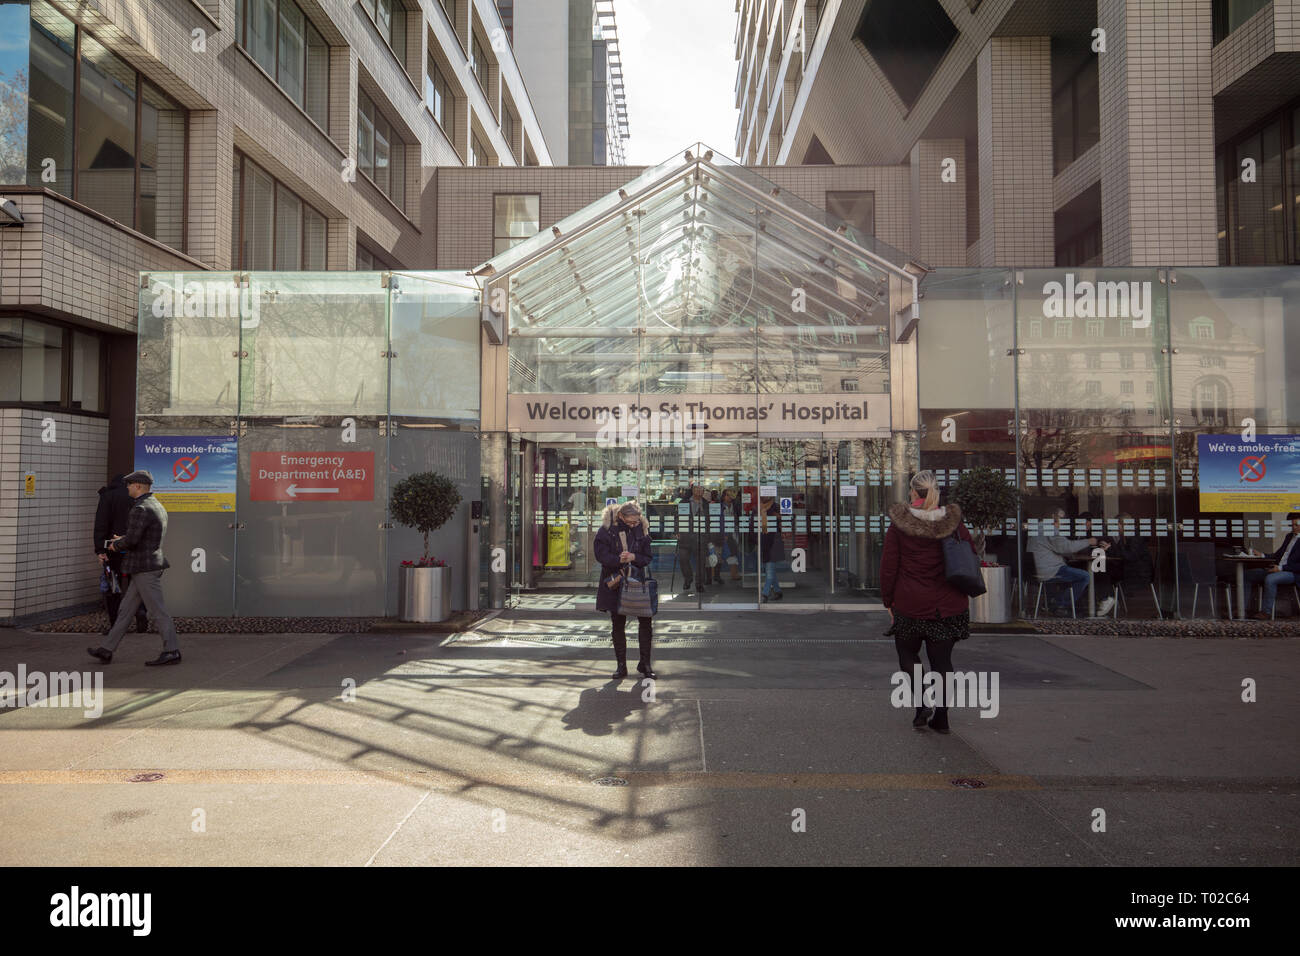 Entrance of St Thomas Hospital in central London, near Westminster Bridge, UK on a midday in March. - Stock Image